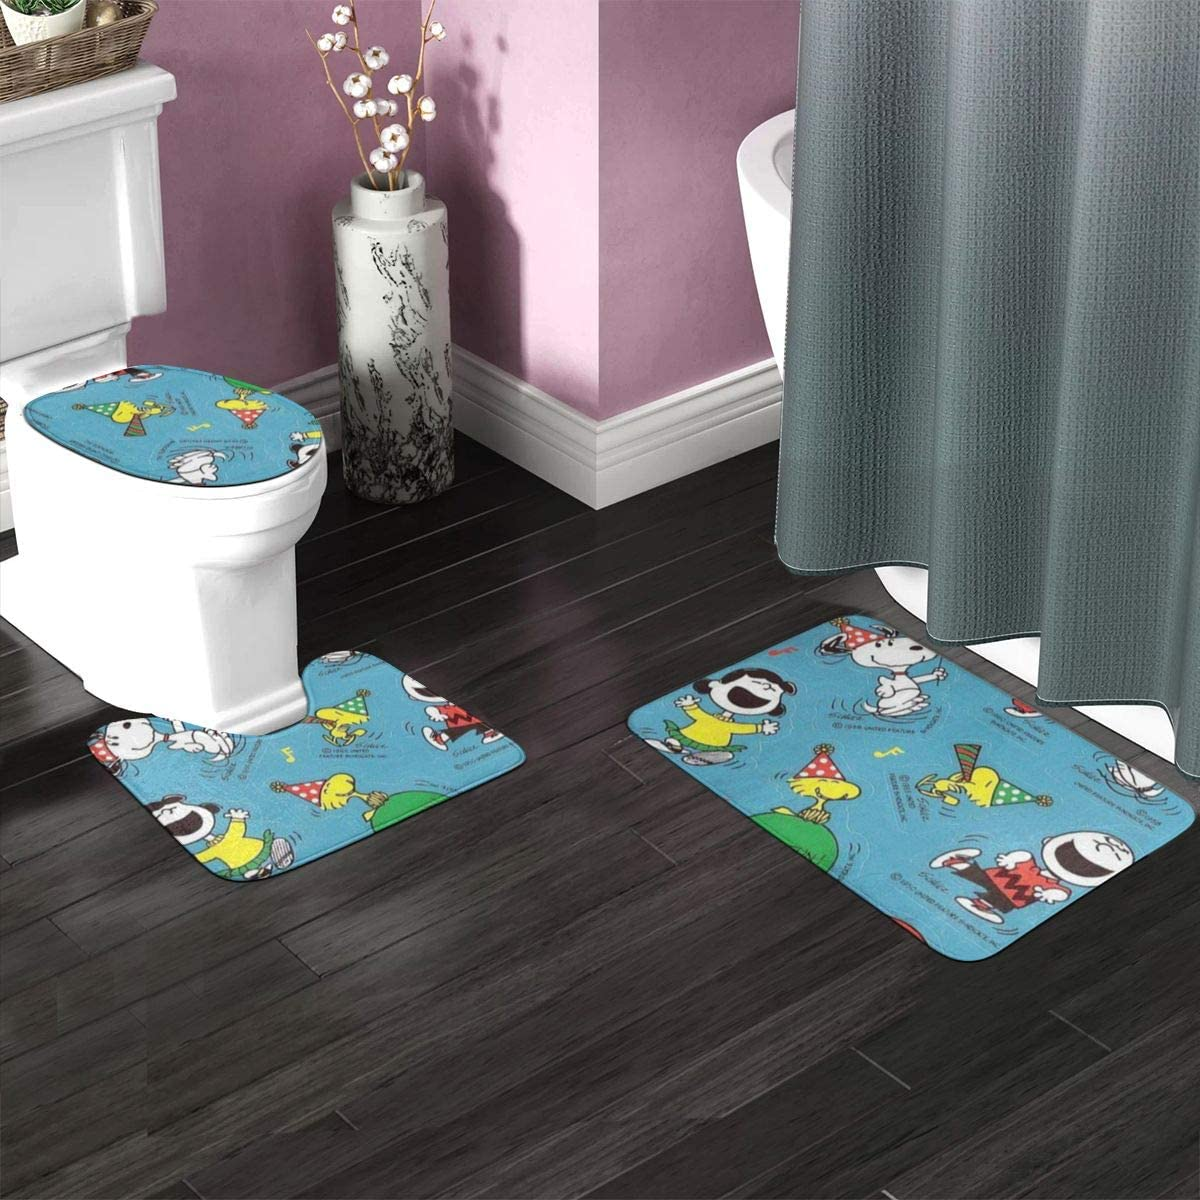 Sleeping-Snoopy Bathroom Antiskid Pad Astronaut Snoopy Toilet Cover Mat Non-Slip Floor Mat Rug Bathroom 3 Sets